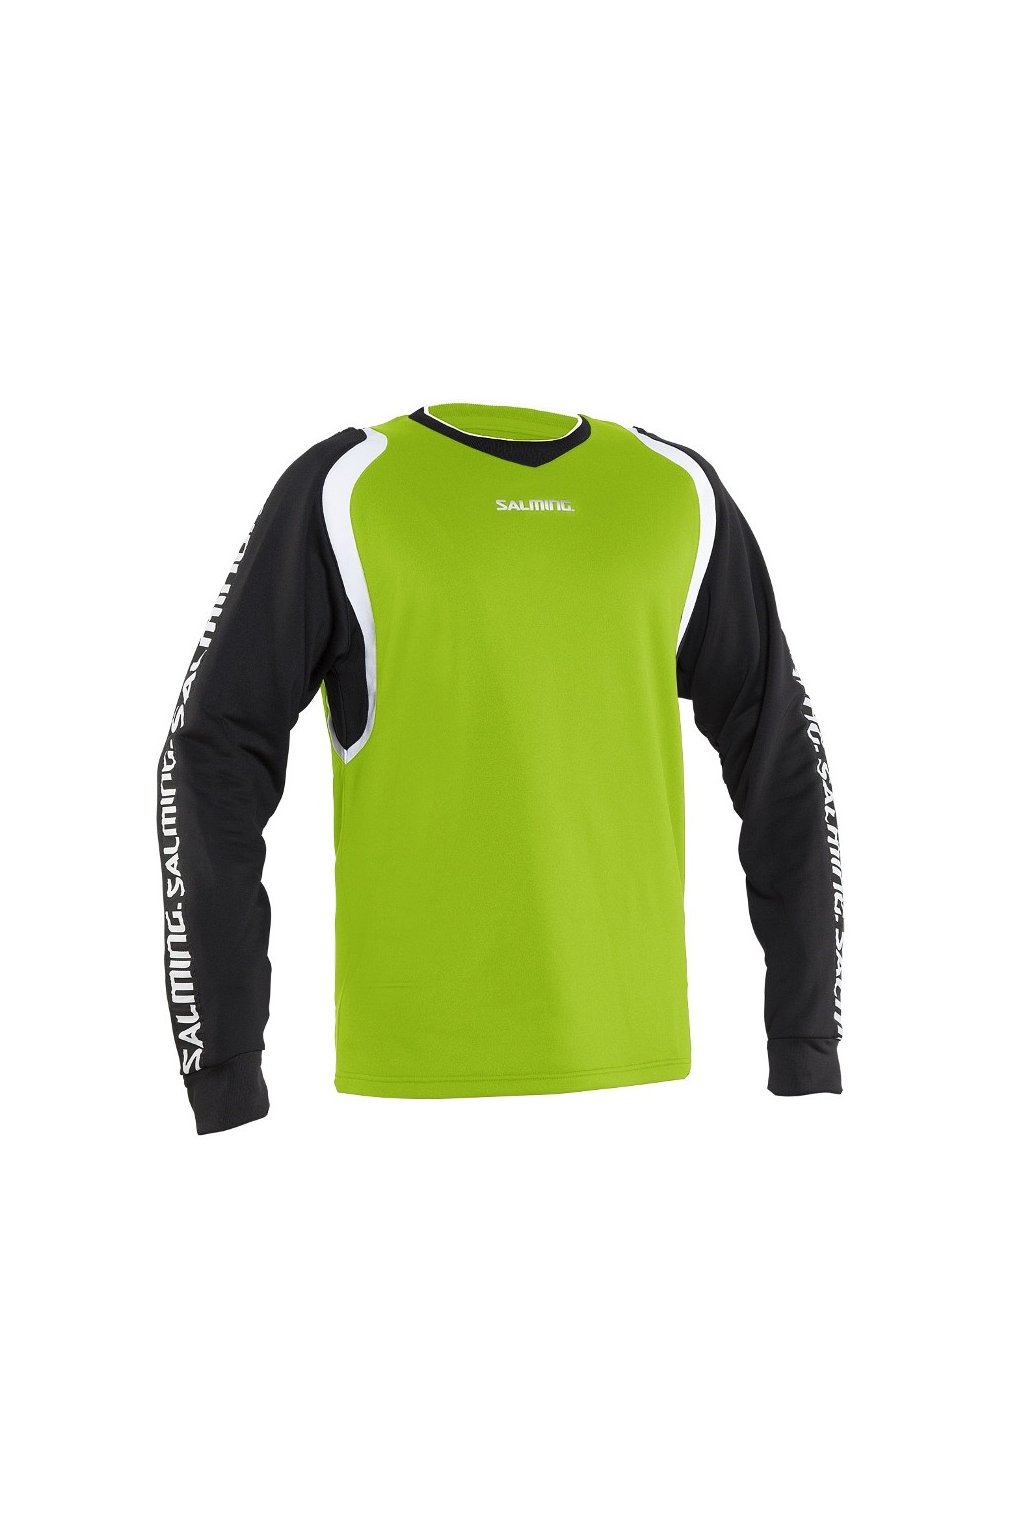 salming agon ls jersey (3)